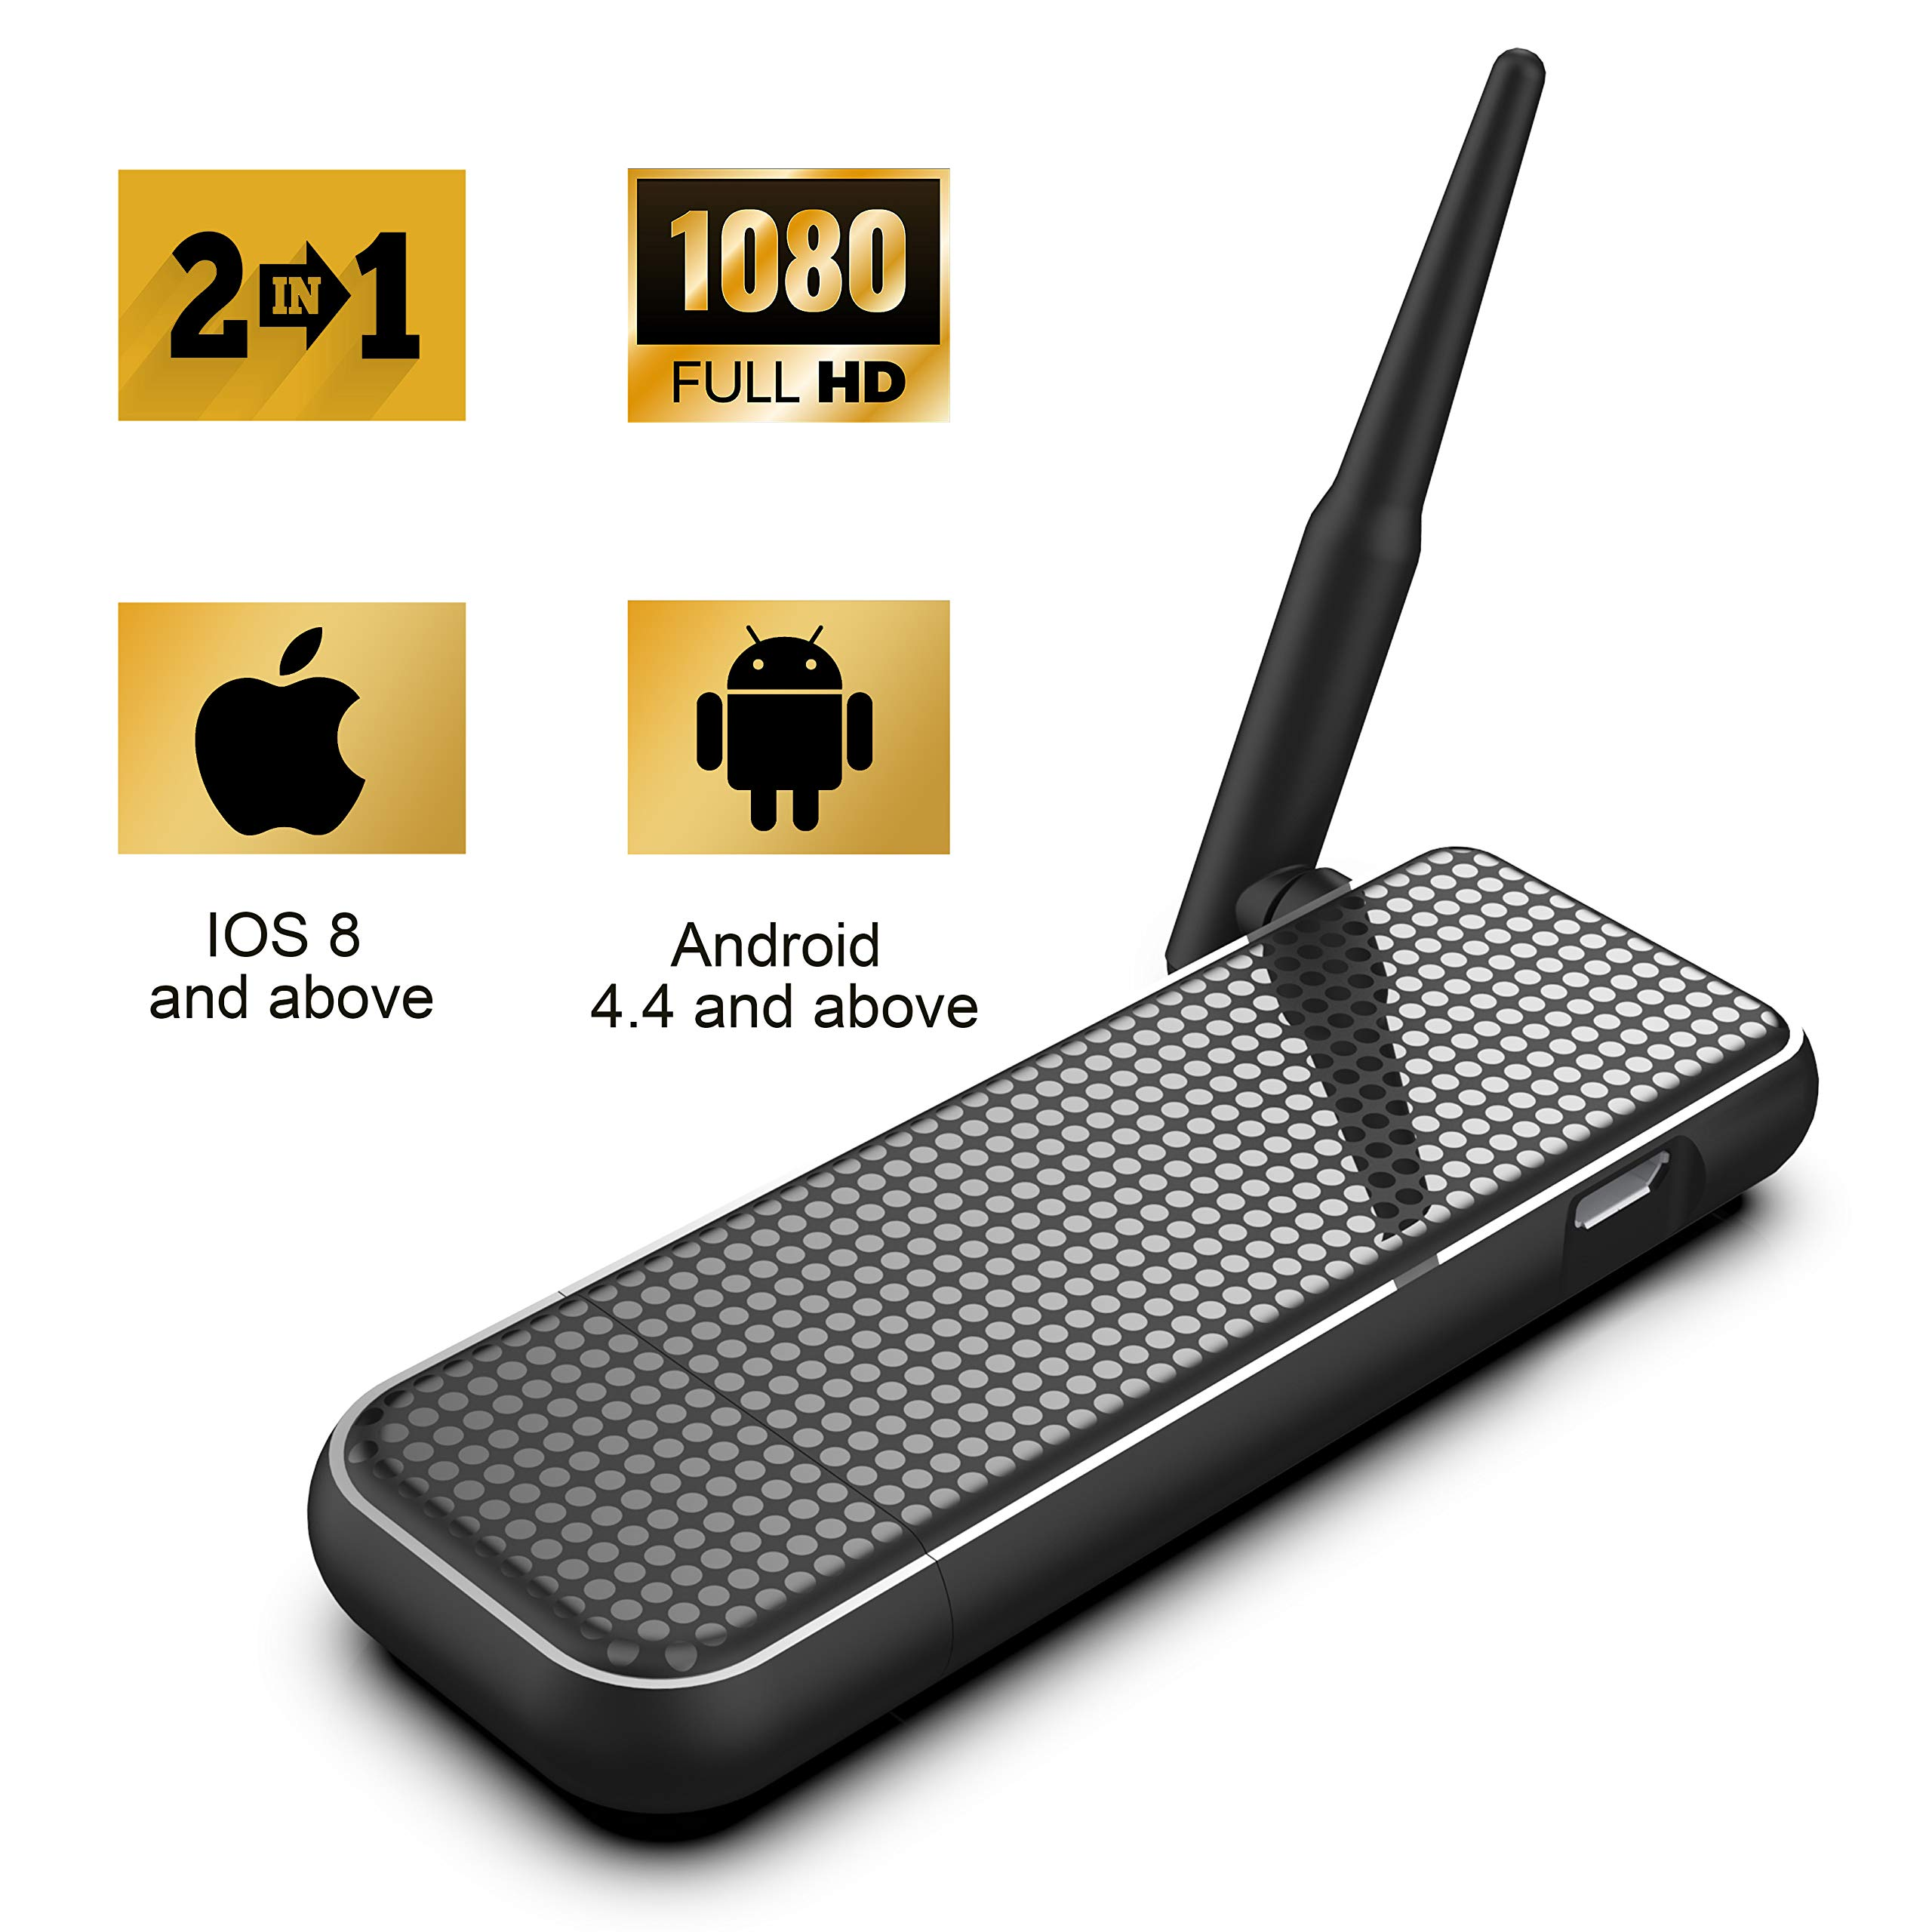 Wireless Display Dongle 1080P WiFi Display Receiver for TV//Projector HDMI Adapter Portable Miracast Dongle Compatible with IOS iPhone iPad//MAC//Android Smartphones//Windows//Pixel//Nexus